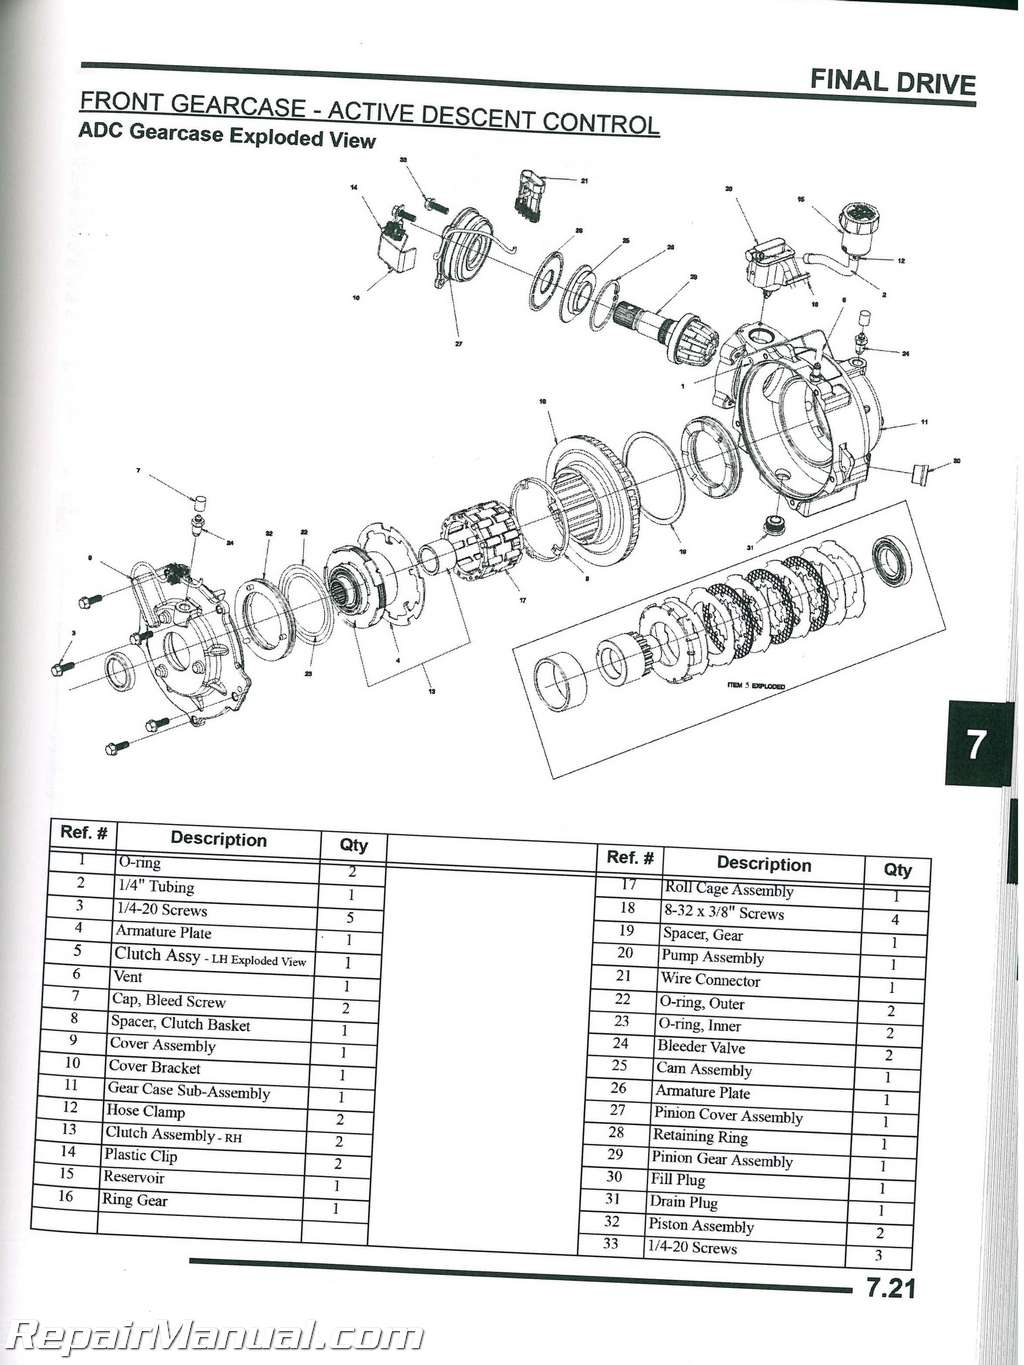 Polaris Ranger 500 Wiring Diagram. Parts. Wiring Diagram